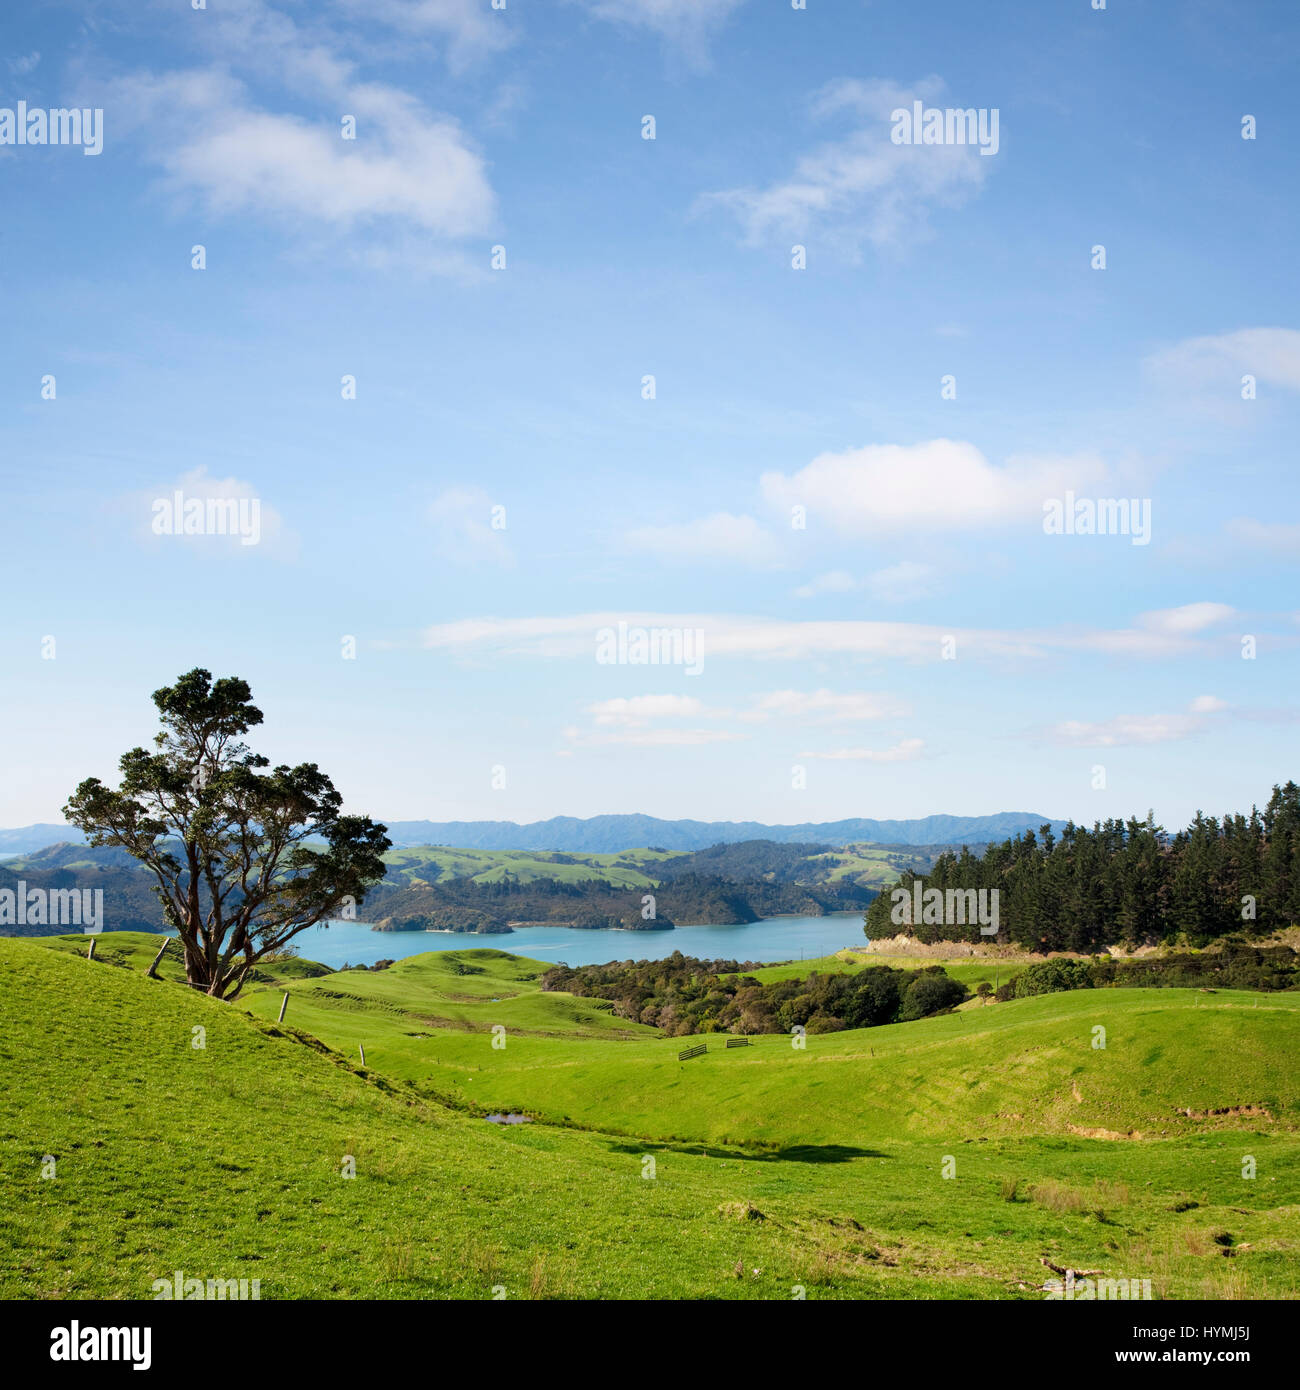 A view over the Coromandel Peninsula in the North Island of New Zealand. - Stock Image